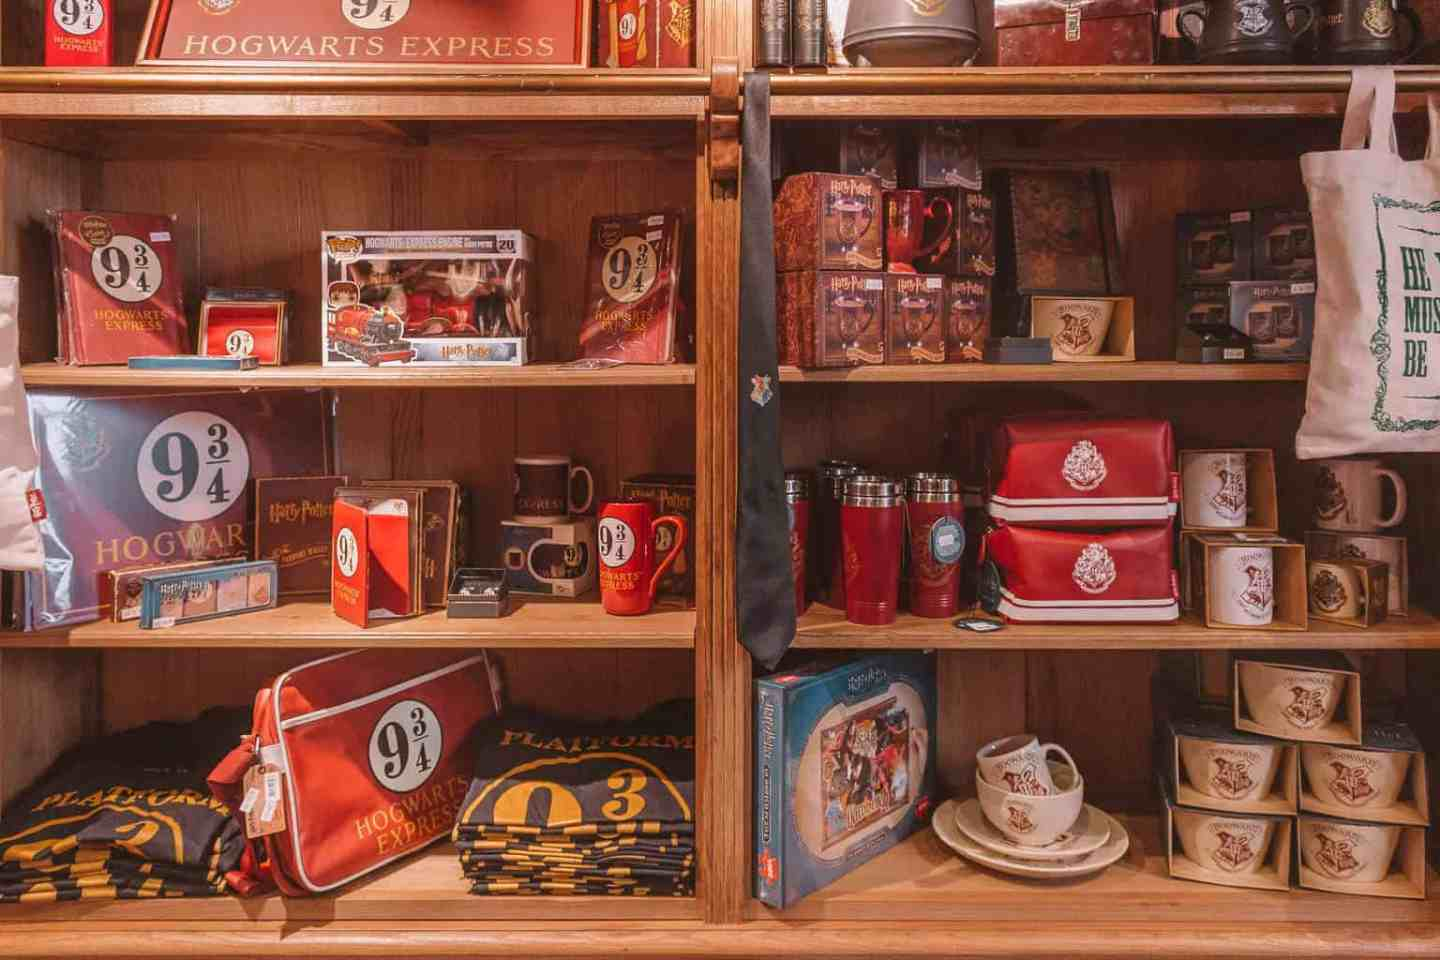 Harry Potter shop - The Ultimate Guide to Harry Potter in York